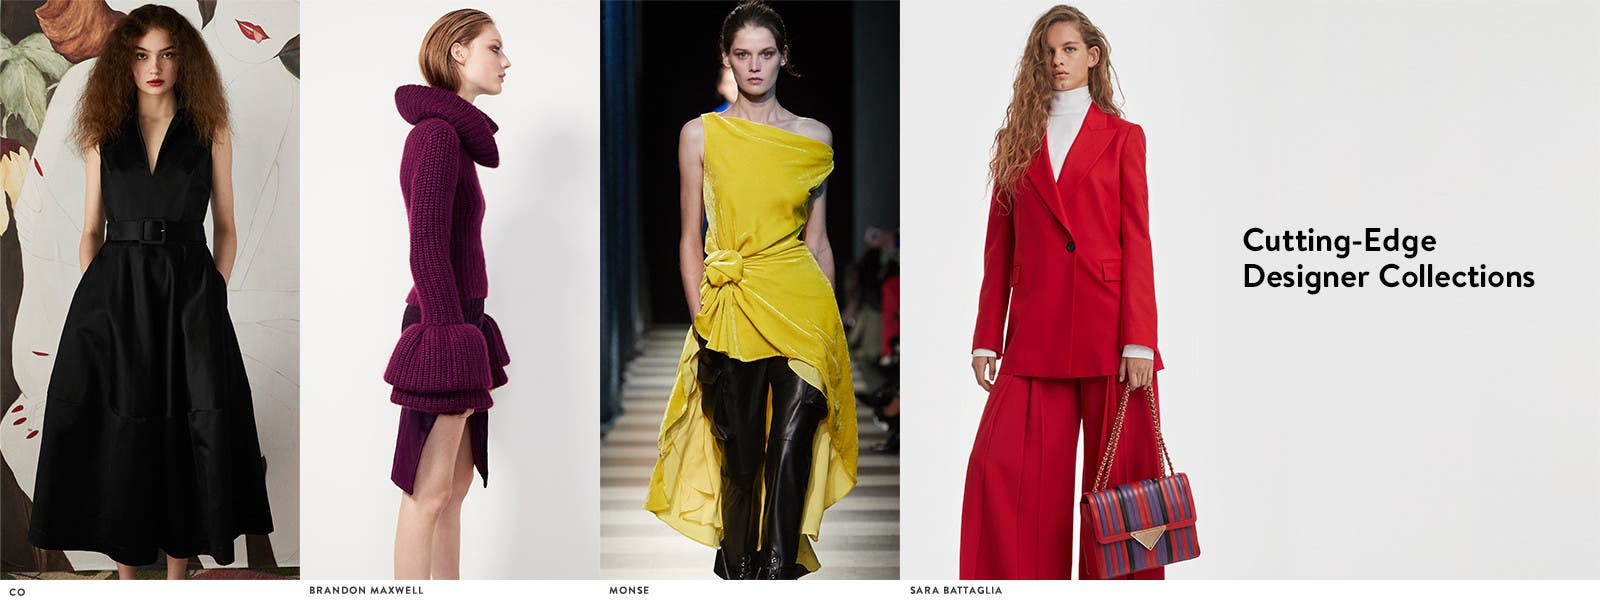 Cutting-edge designer collections: Co, Brandon Maxwell, Monse, Sara Battaglia.